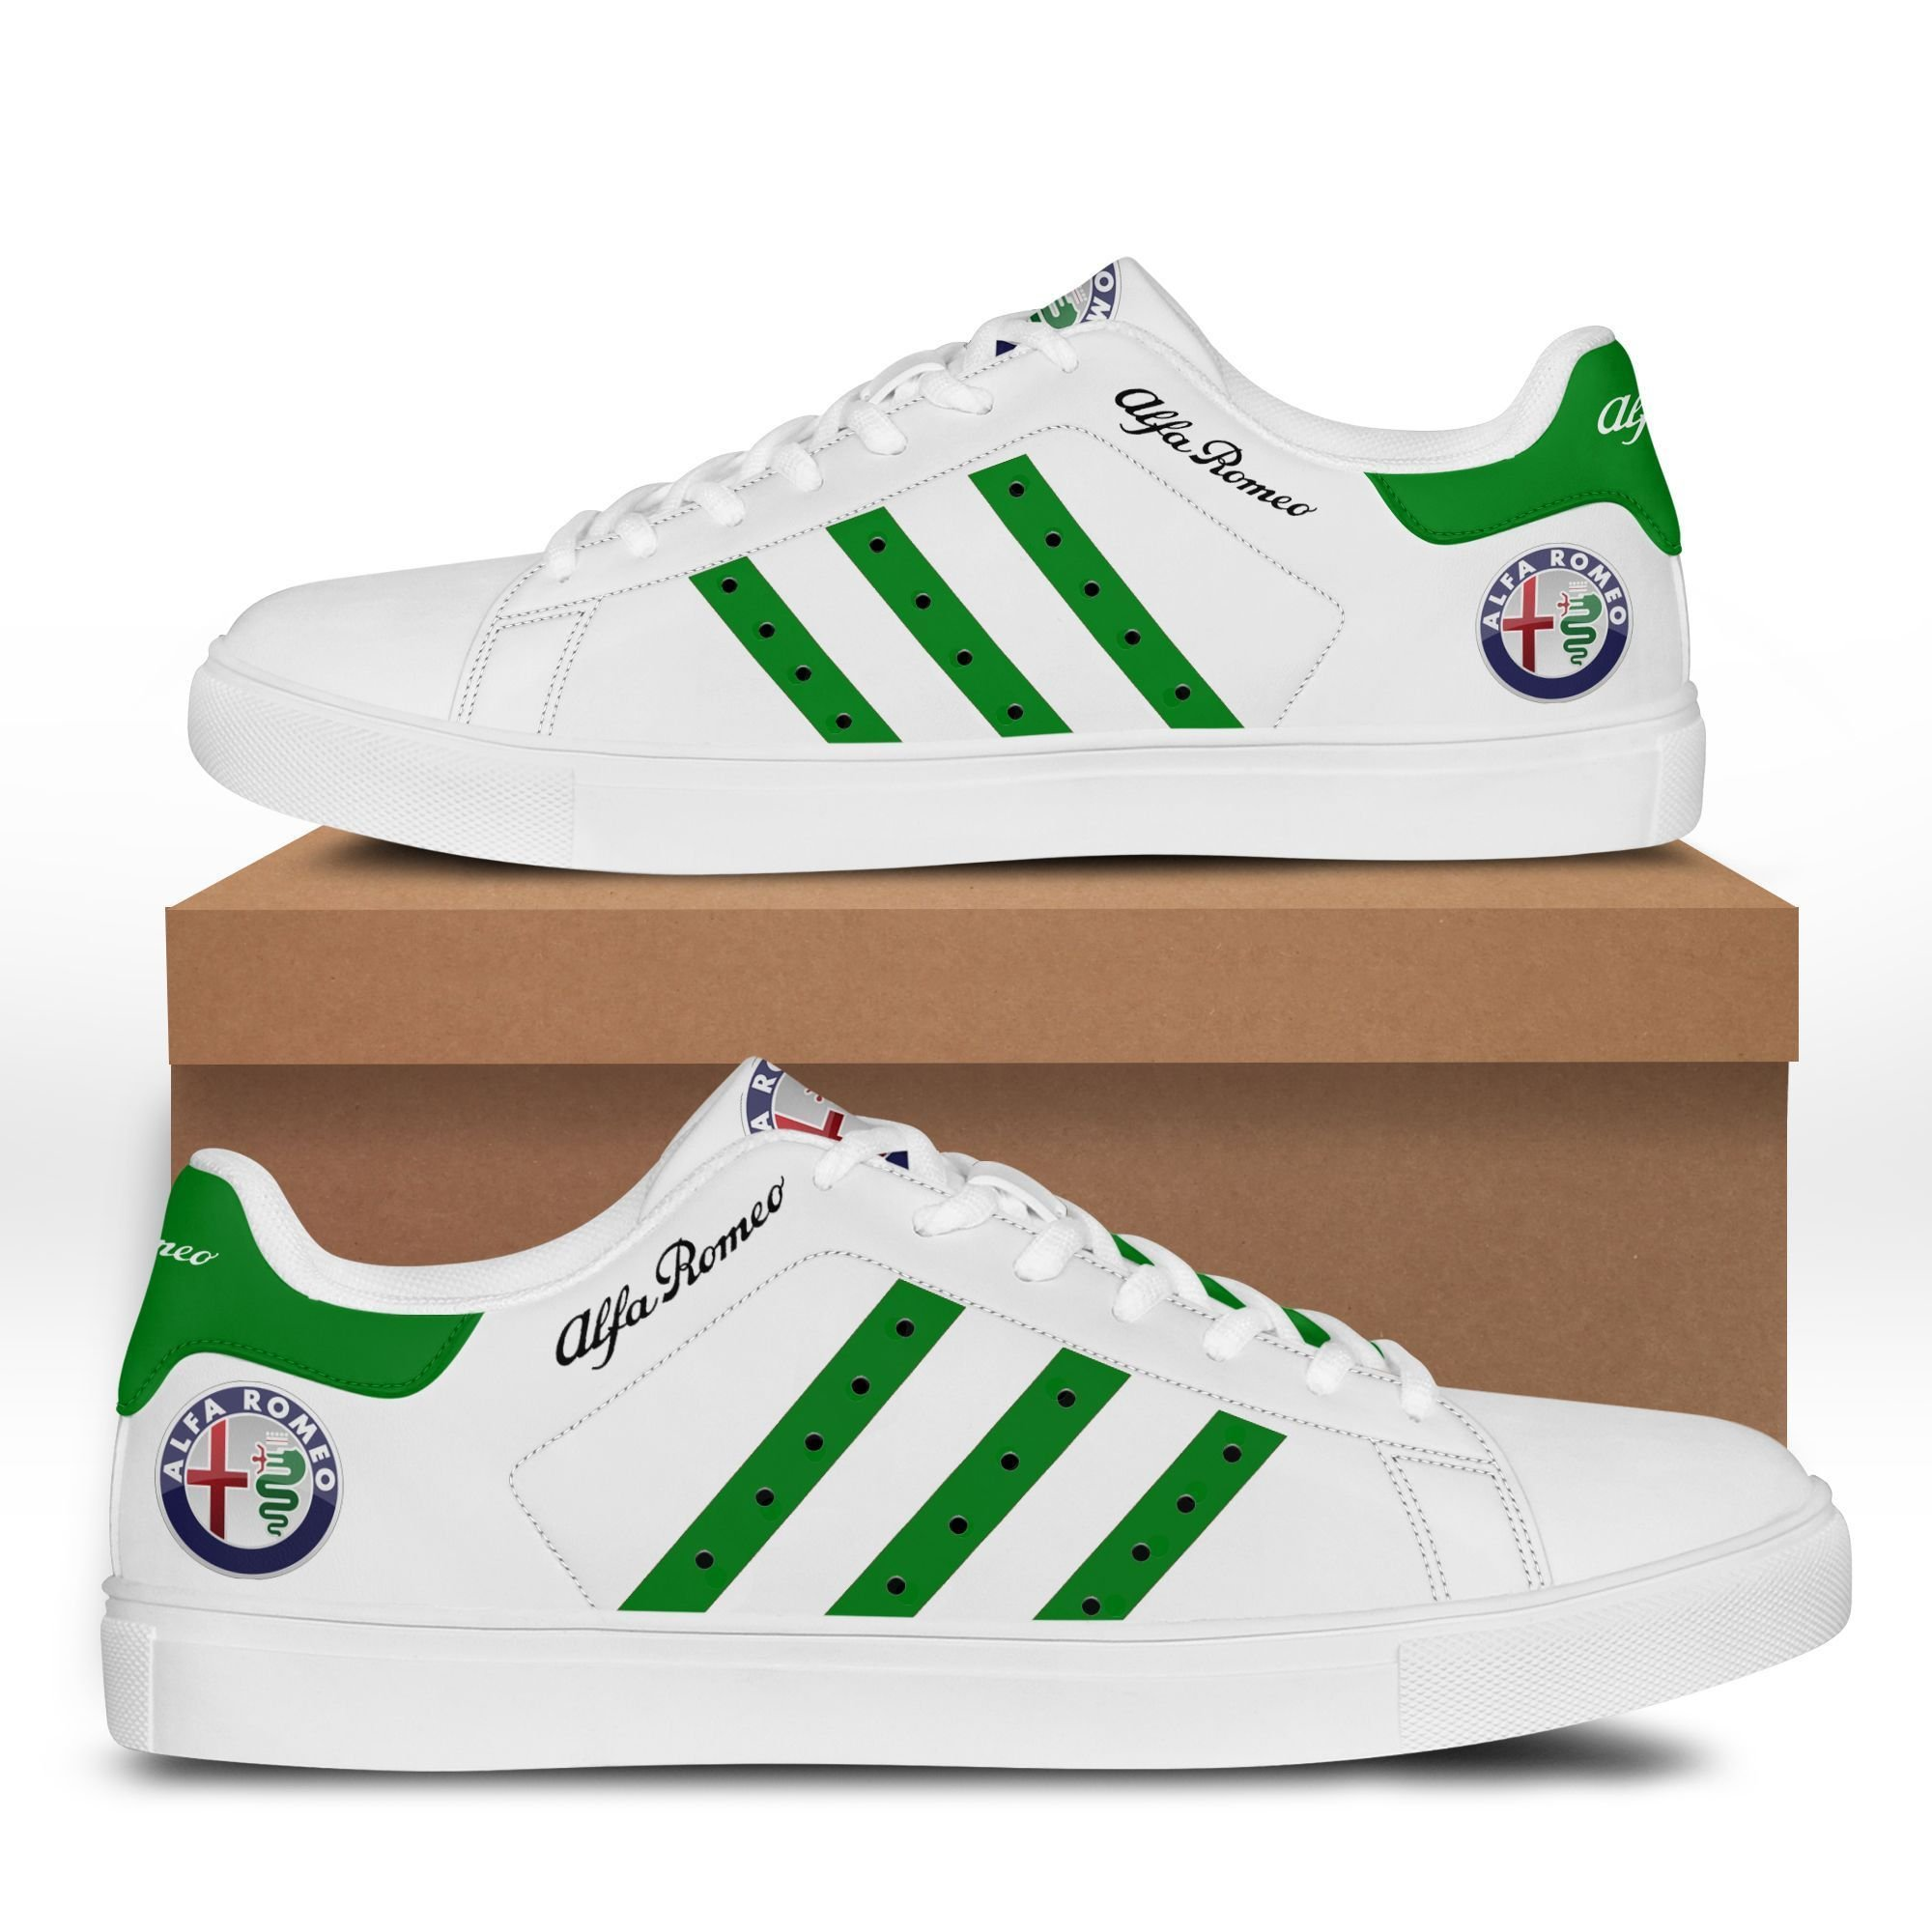 Alfa Romeo Green Lines in White Stan Smith Shoes